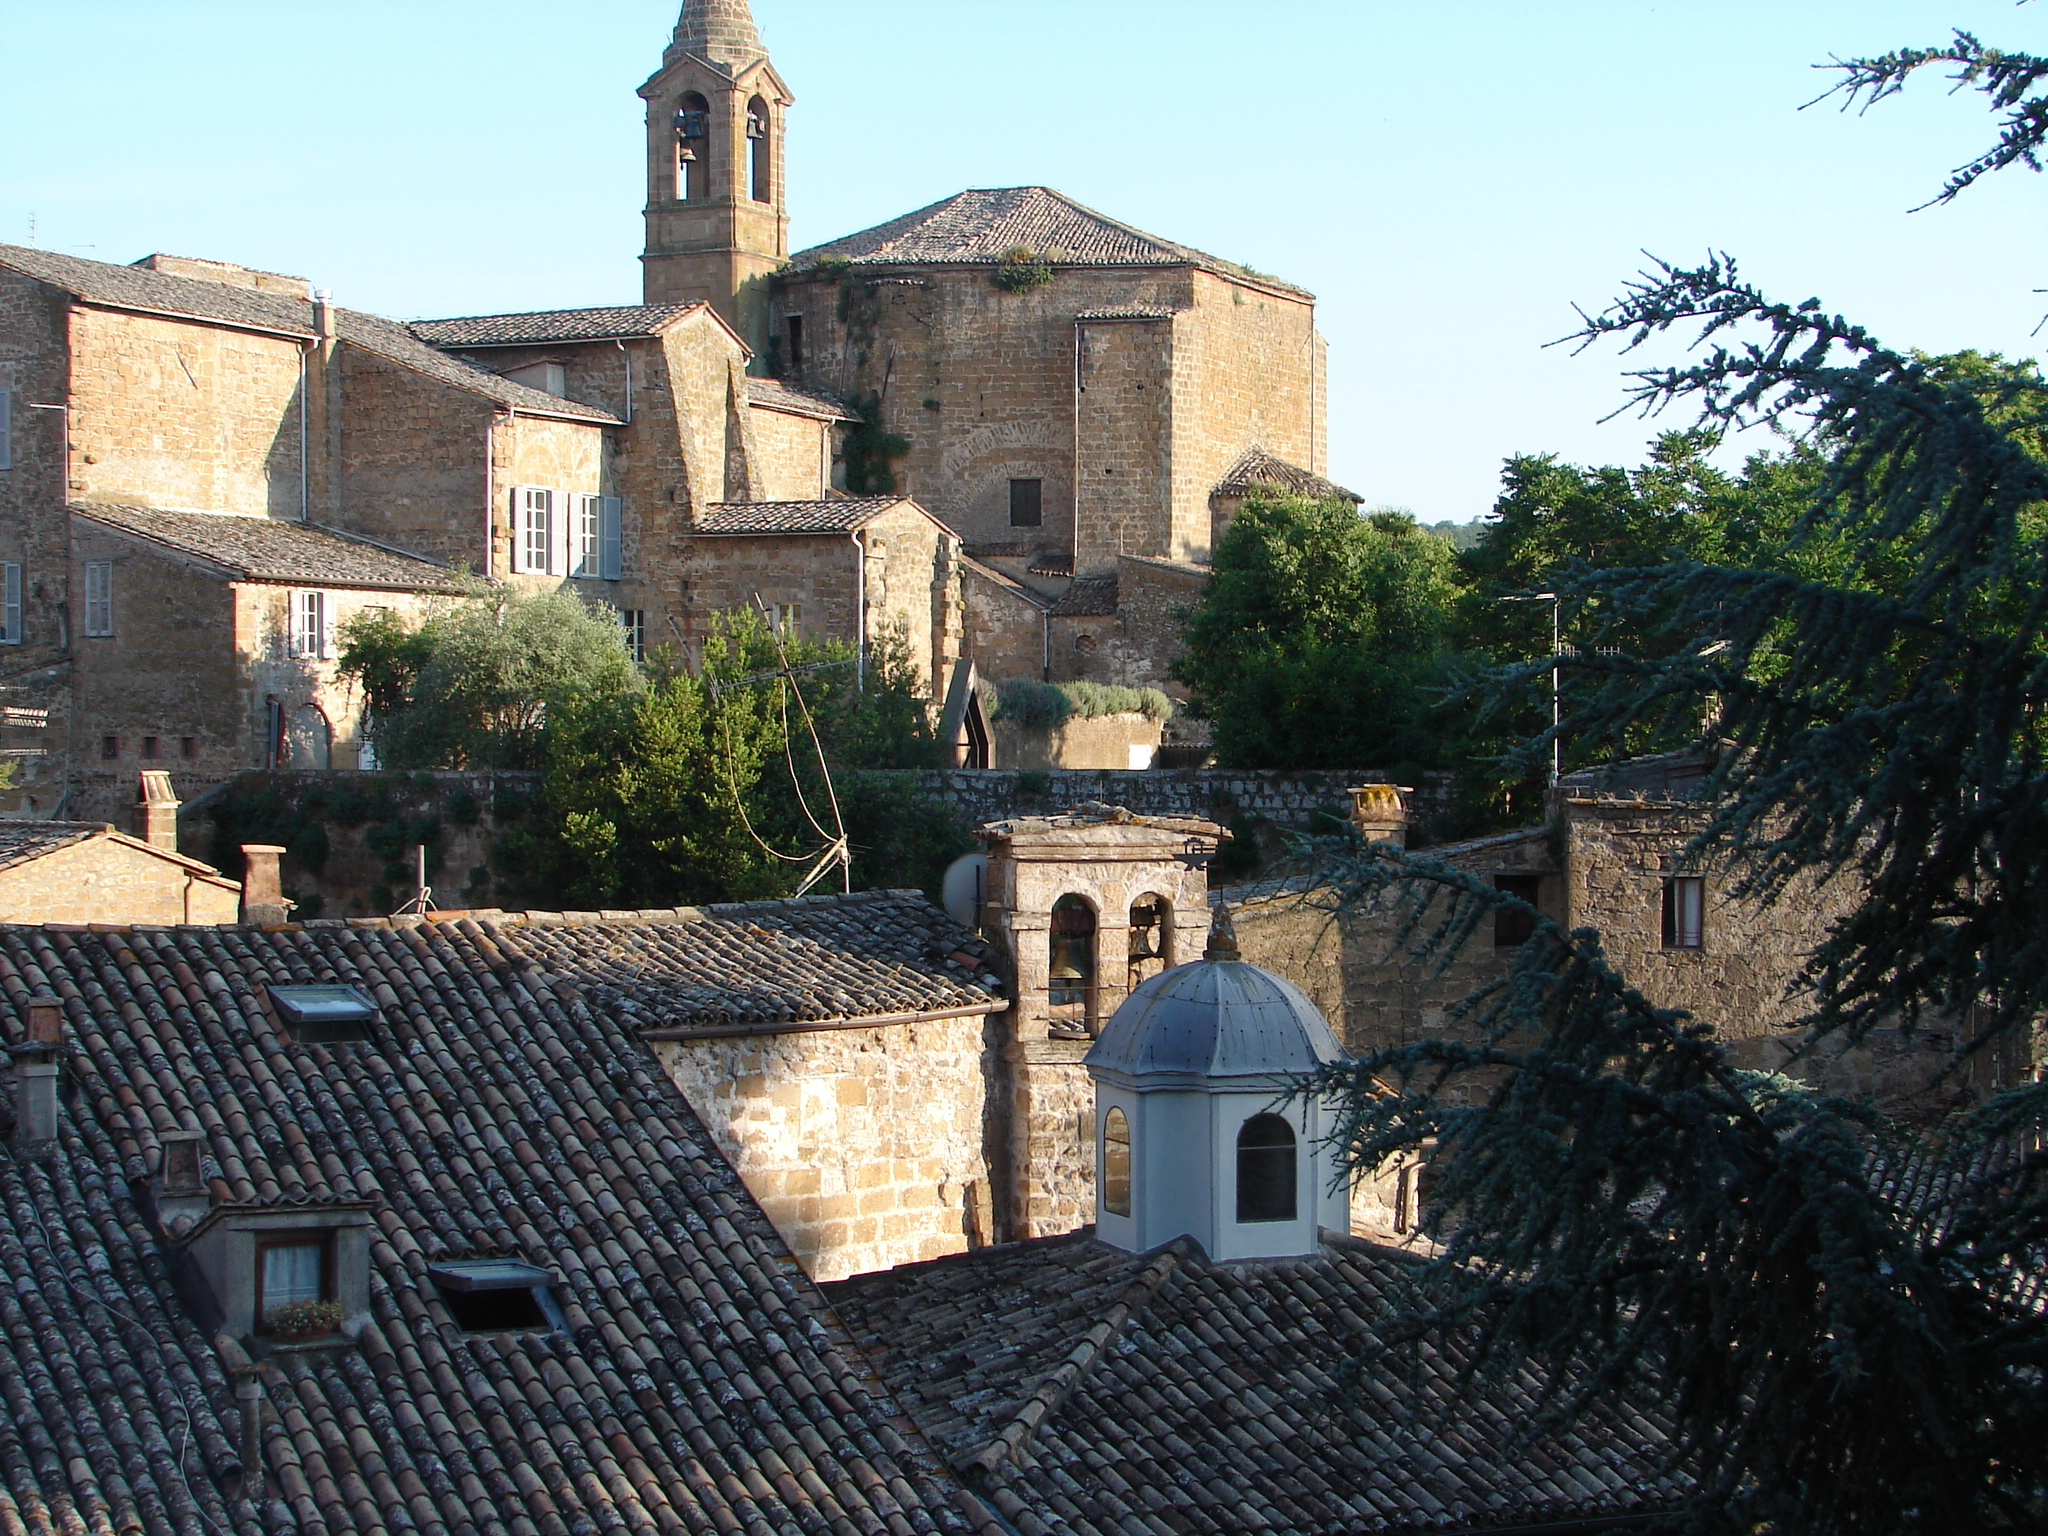 The medieval quarter seen from the entrance to Palazzo Simoncelli (Photograph by John Skillen).